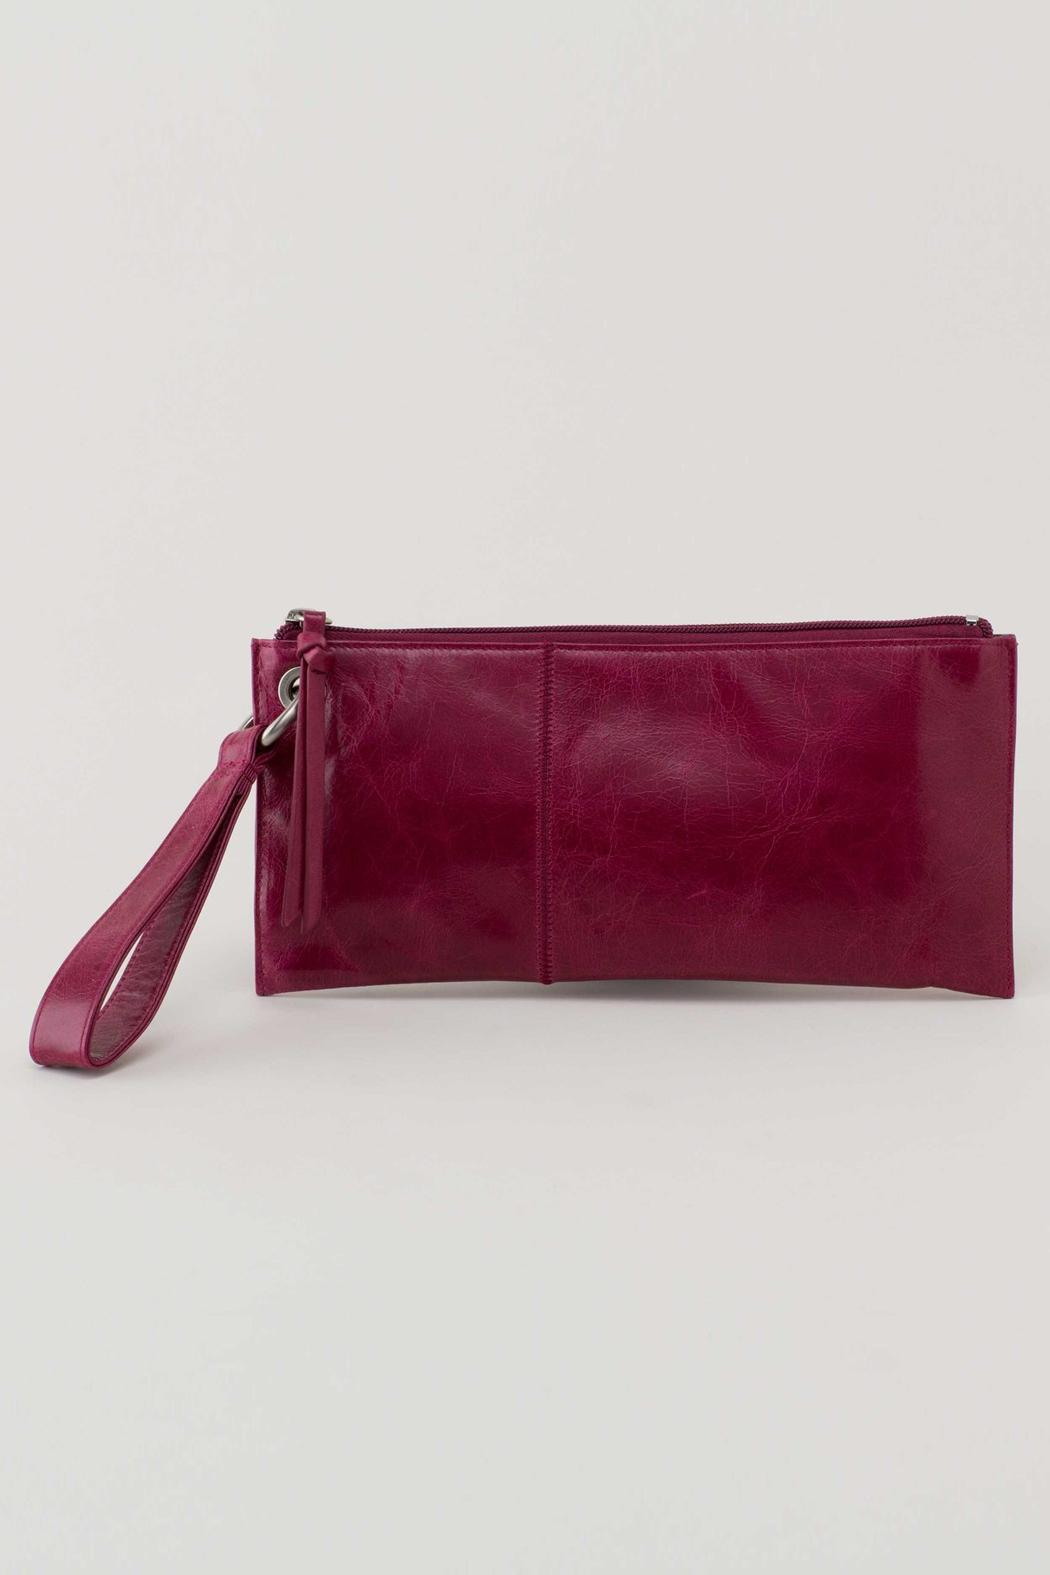 VIDA Statement Clutch - New Peace by VIDA ooSpkh